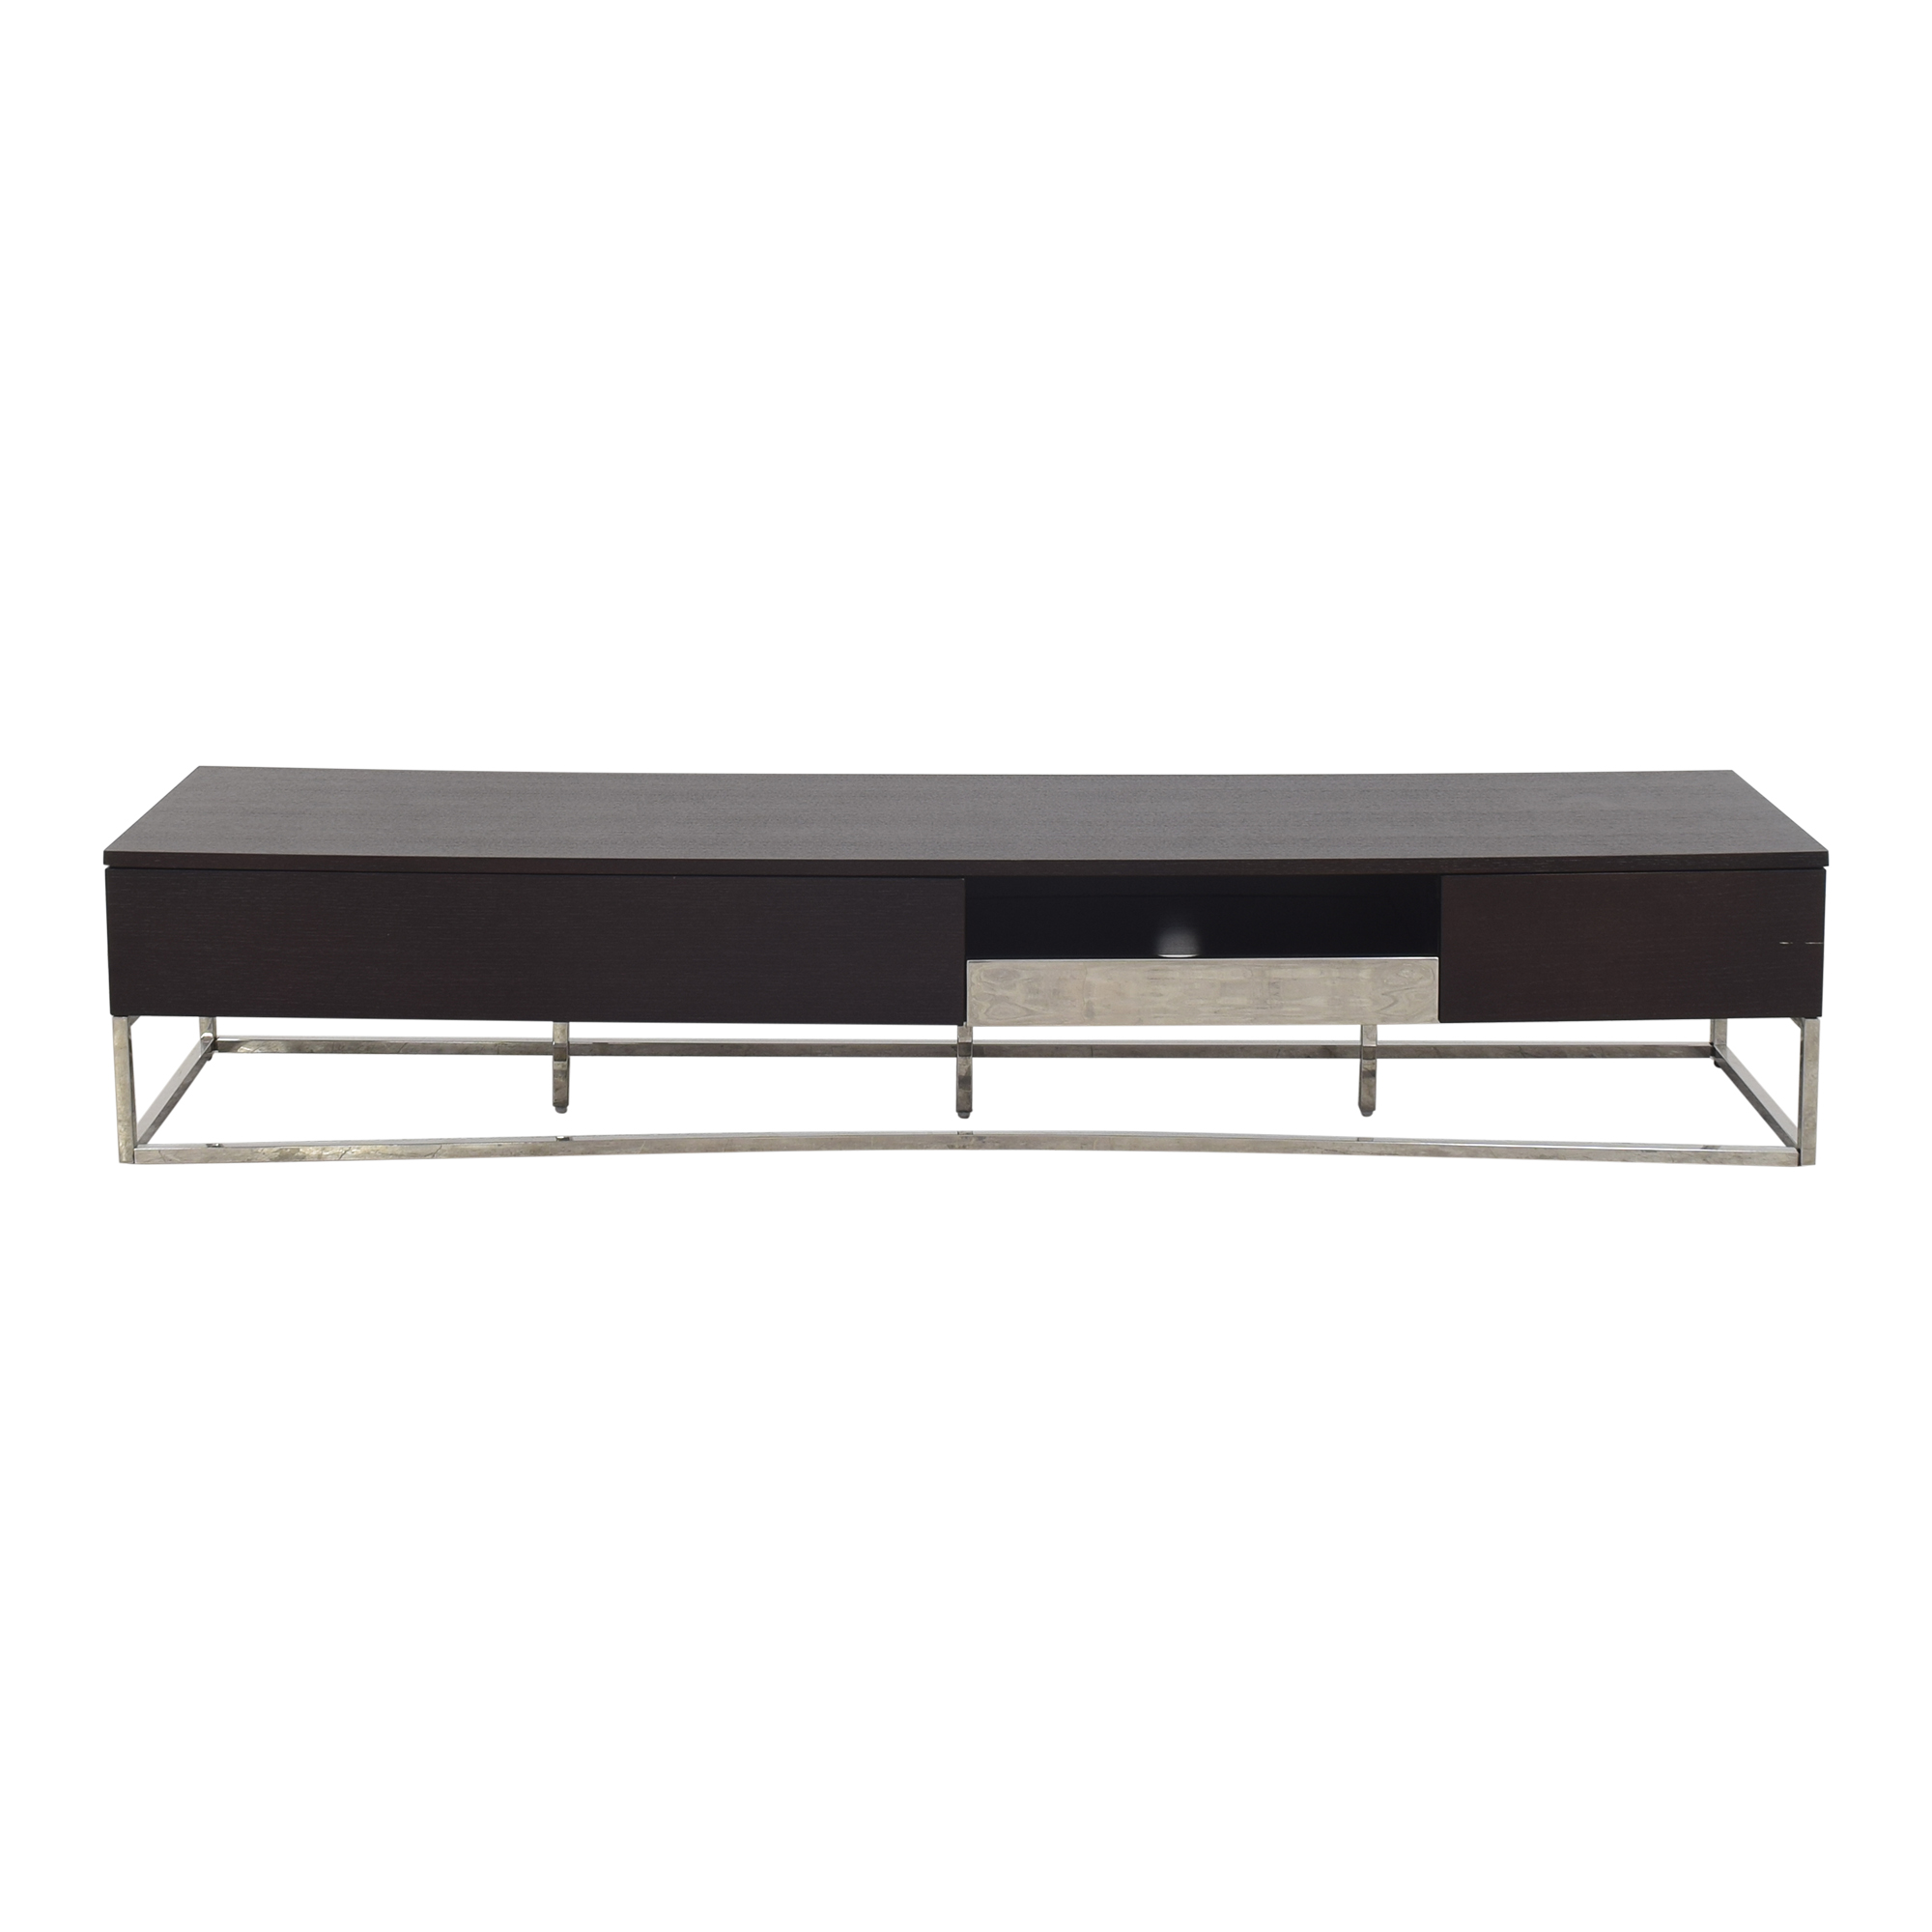 Wayfair Wayfair Orren Ellis Wyandotte TV Stand discount